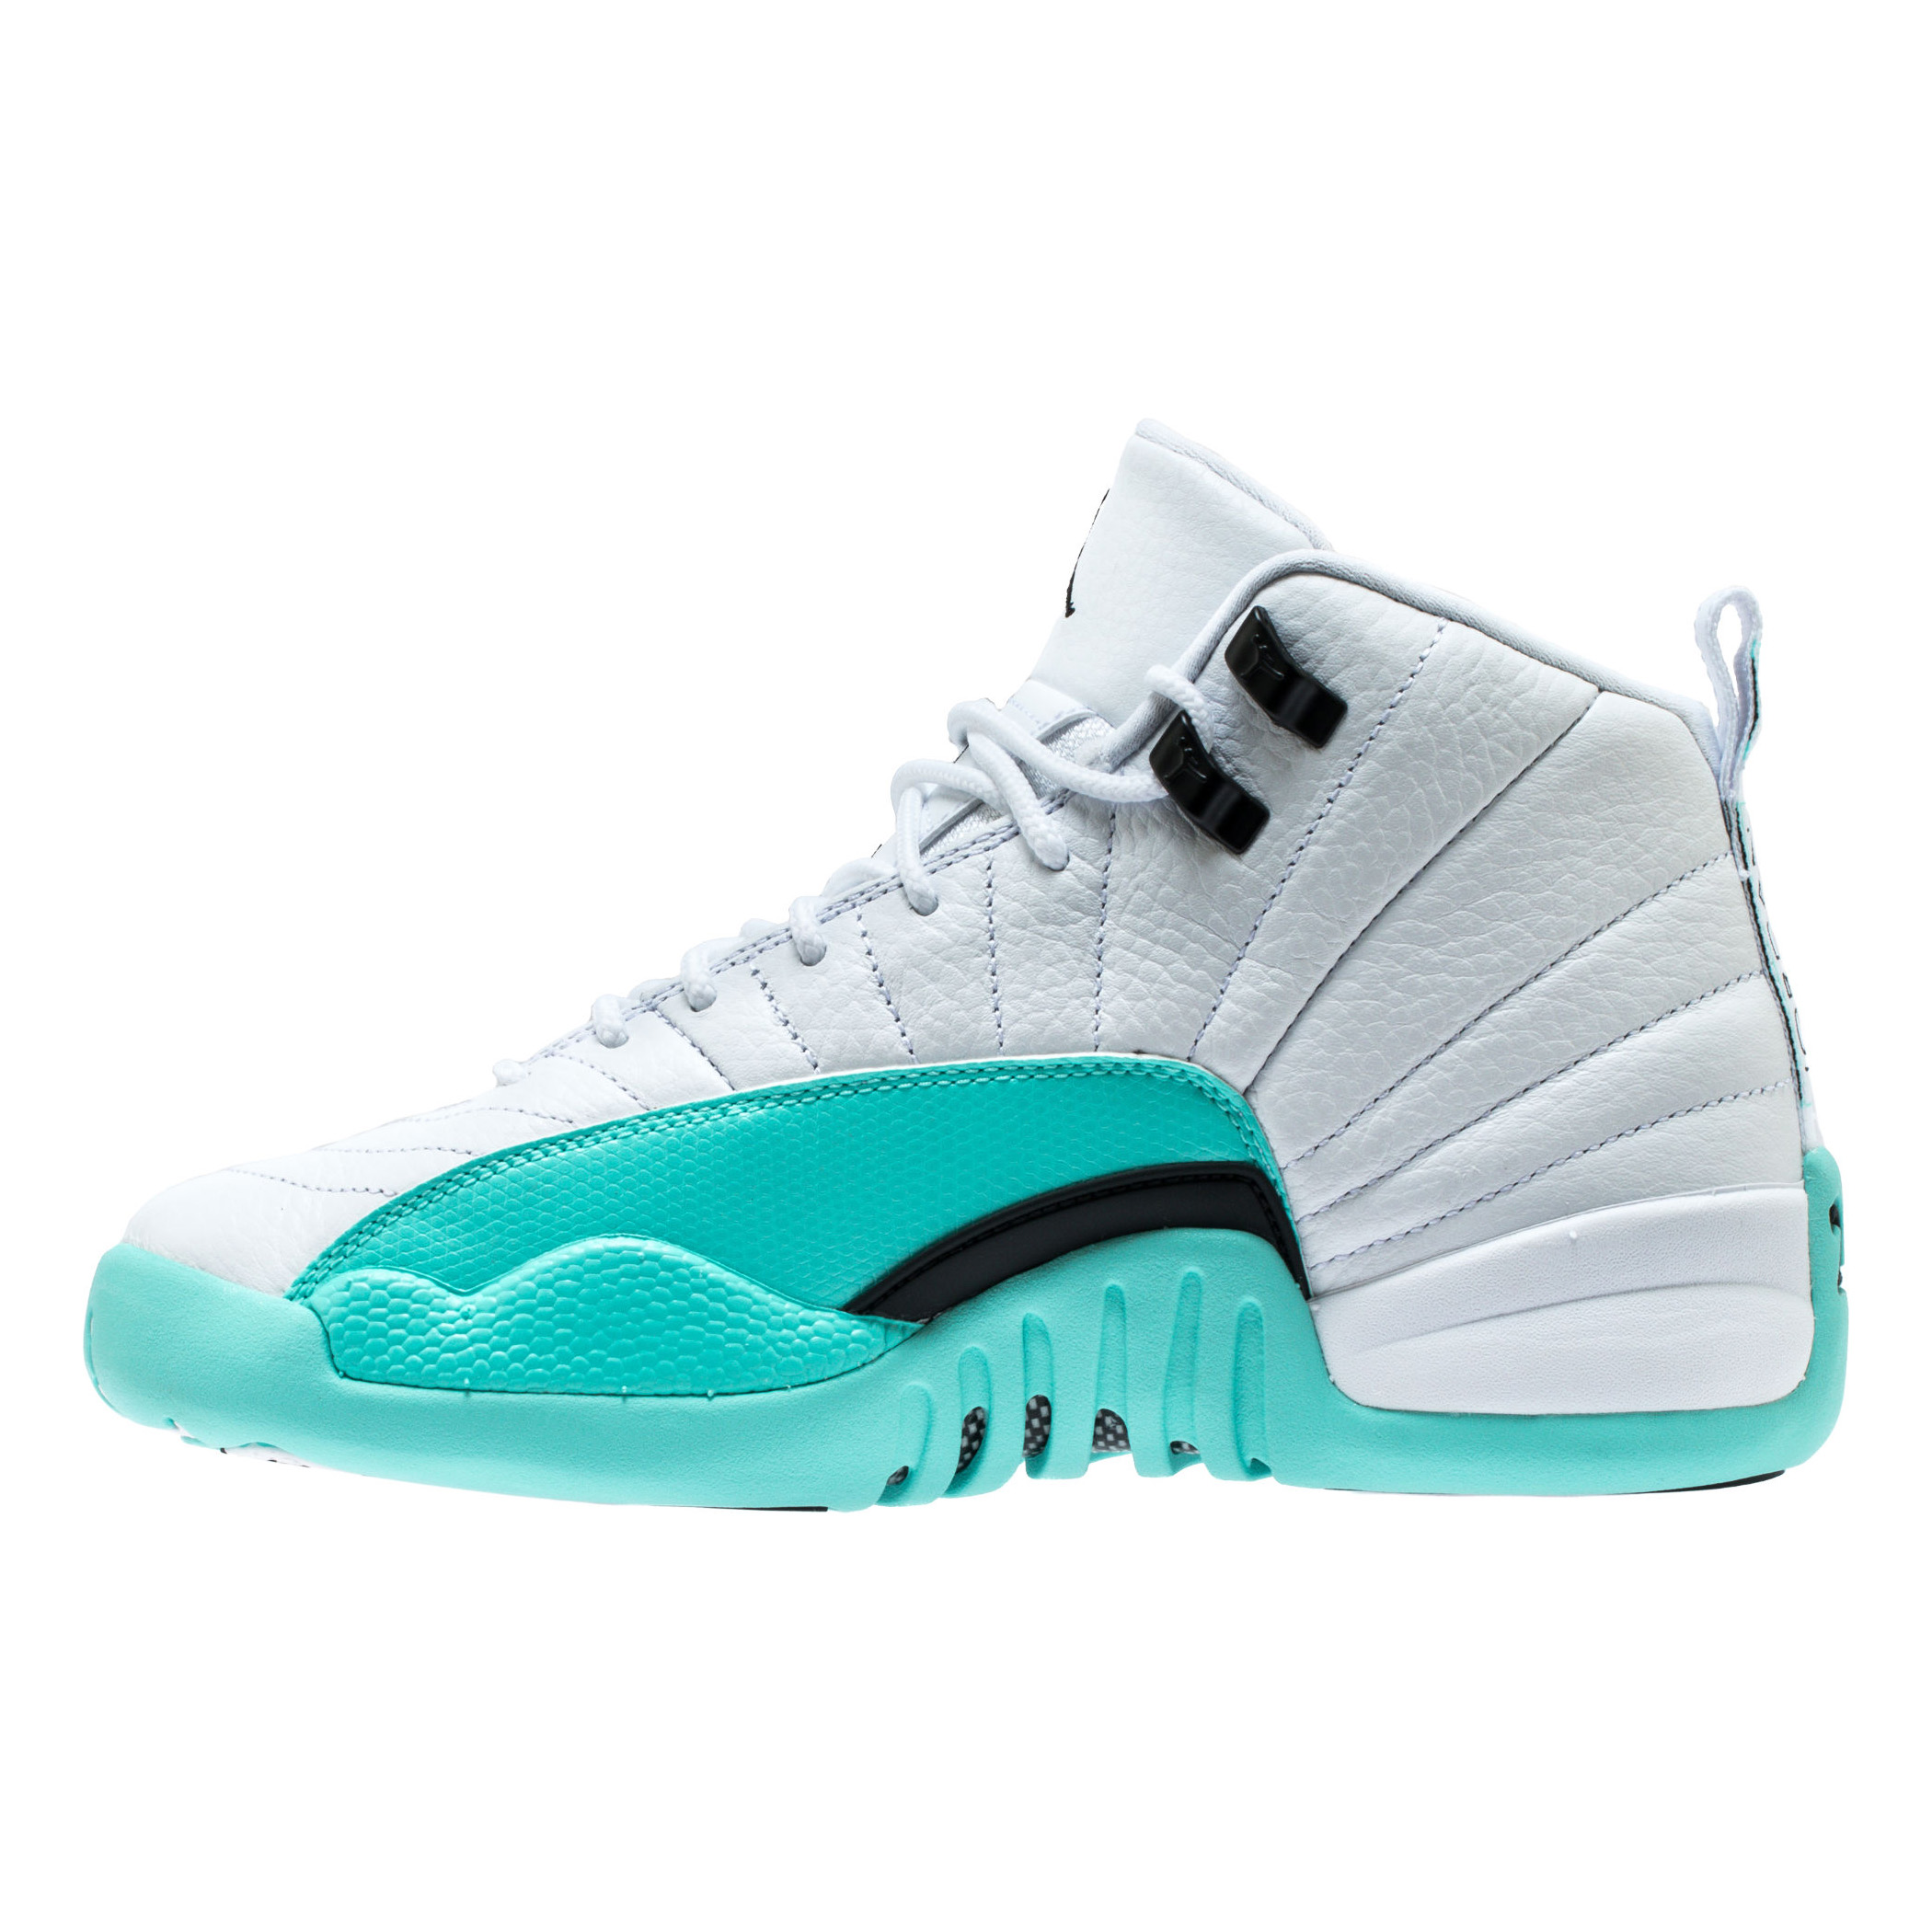 best website 7583f 26430 Check Out This 'Light Aqua' Air Jordan 12 Retro - WearTesters